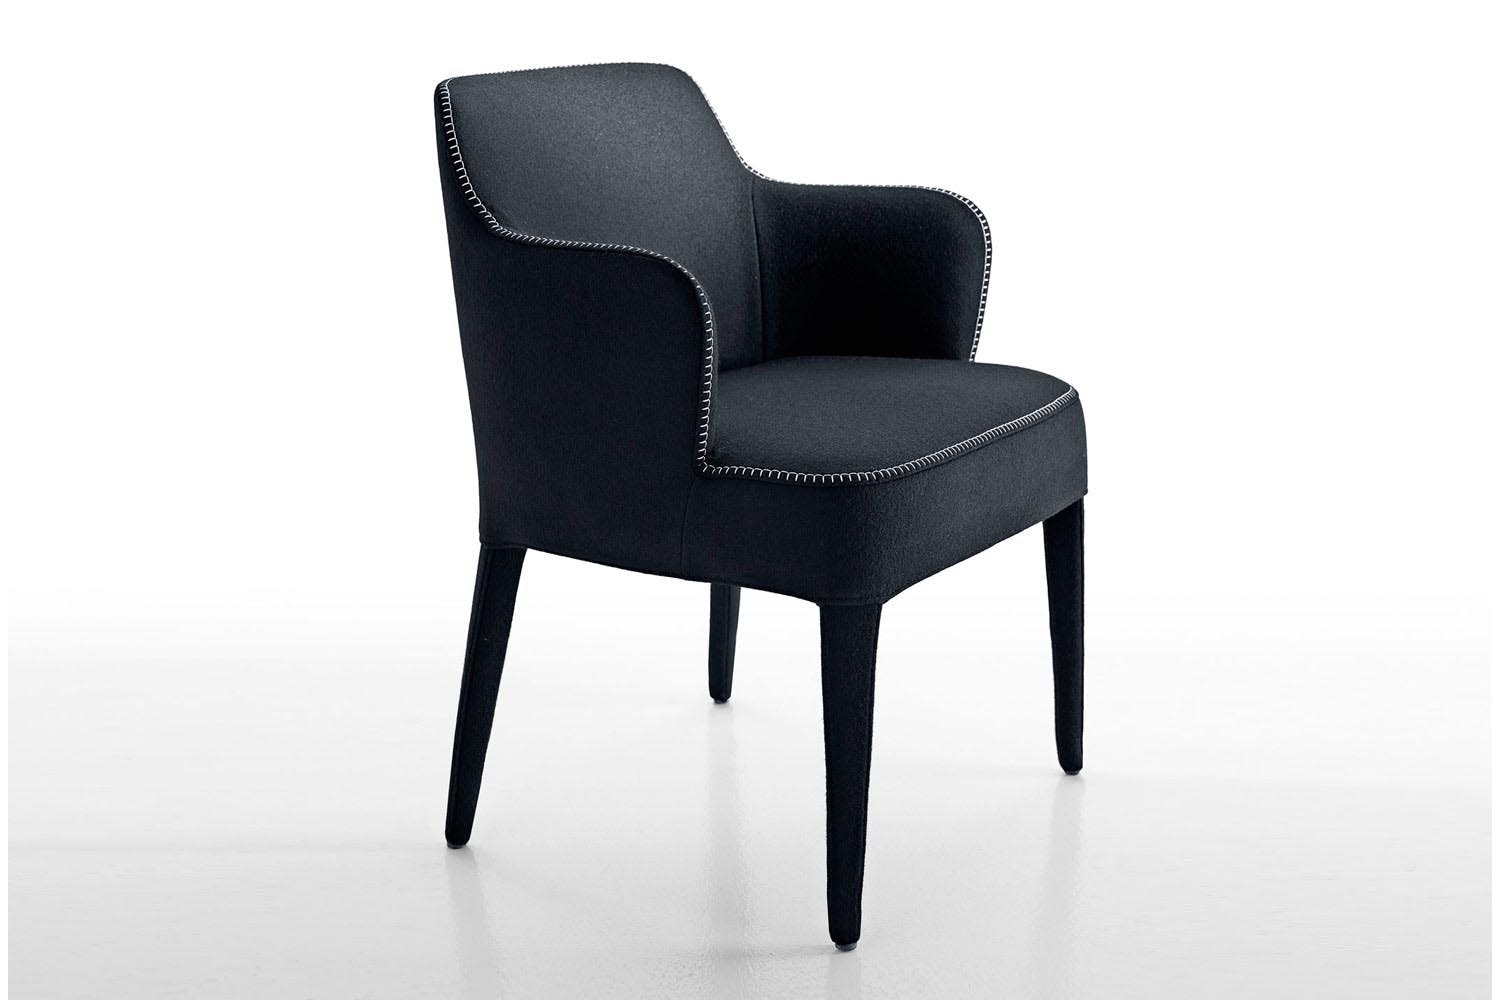 Febo '15 Chair By Antonio Citterio For Maxalto